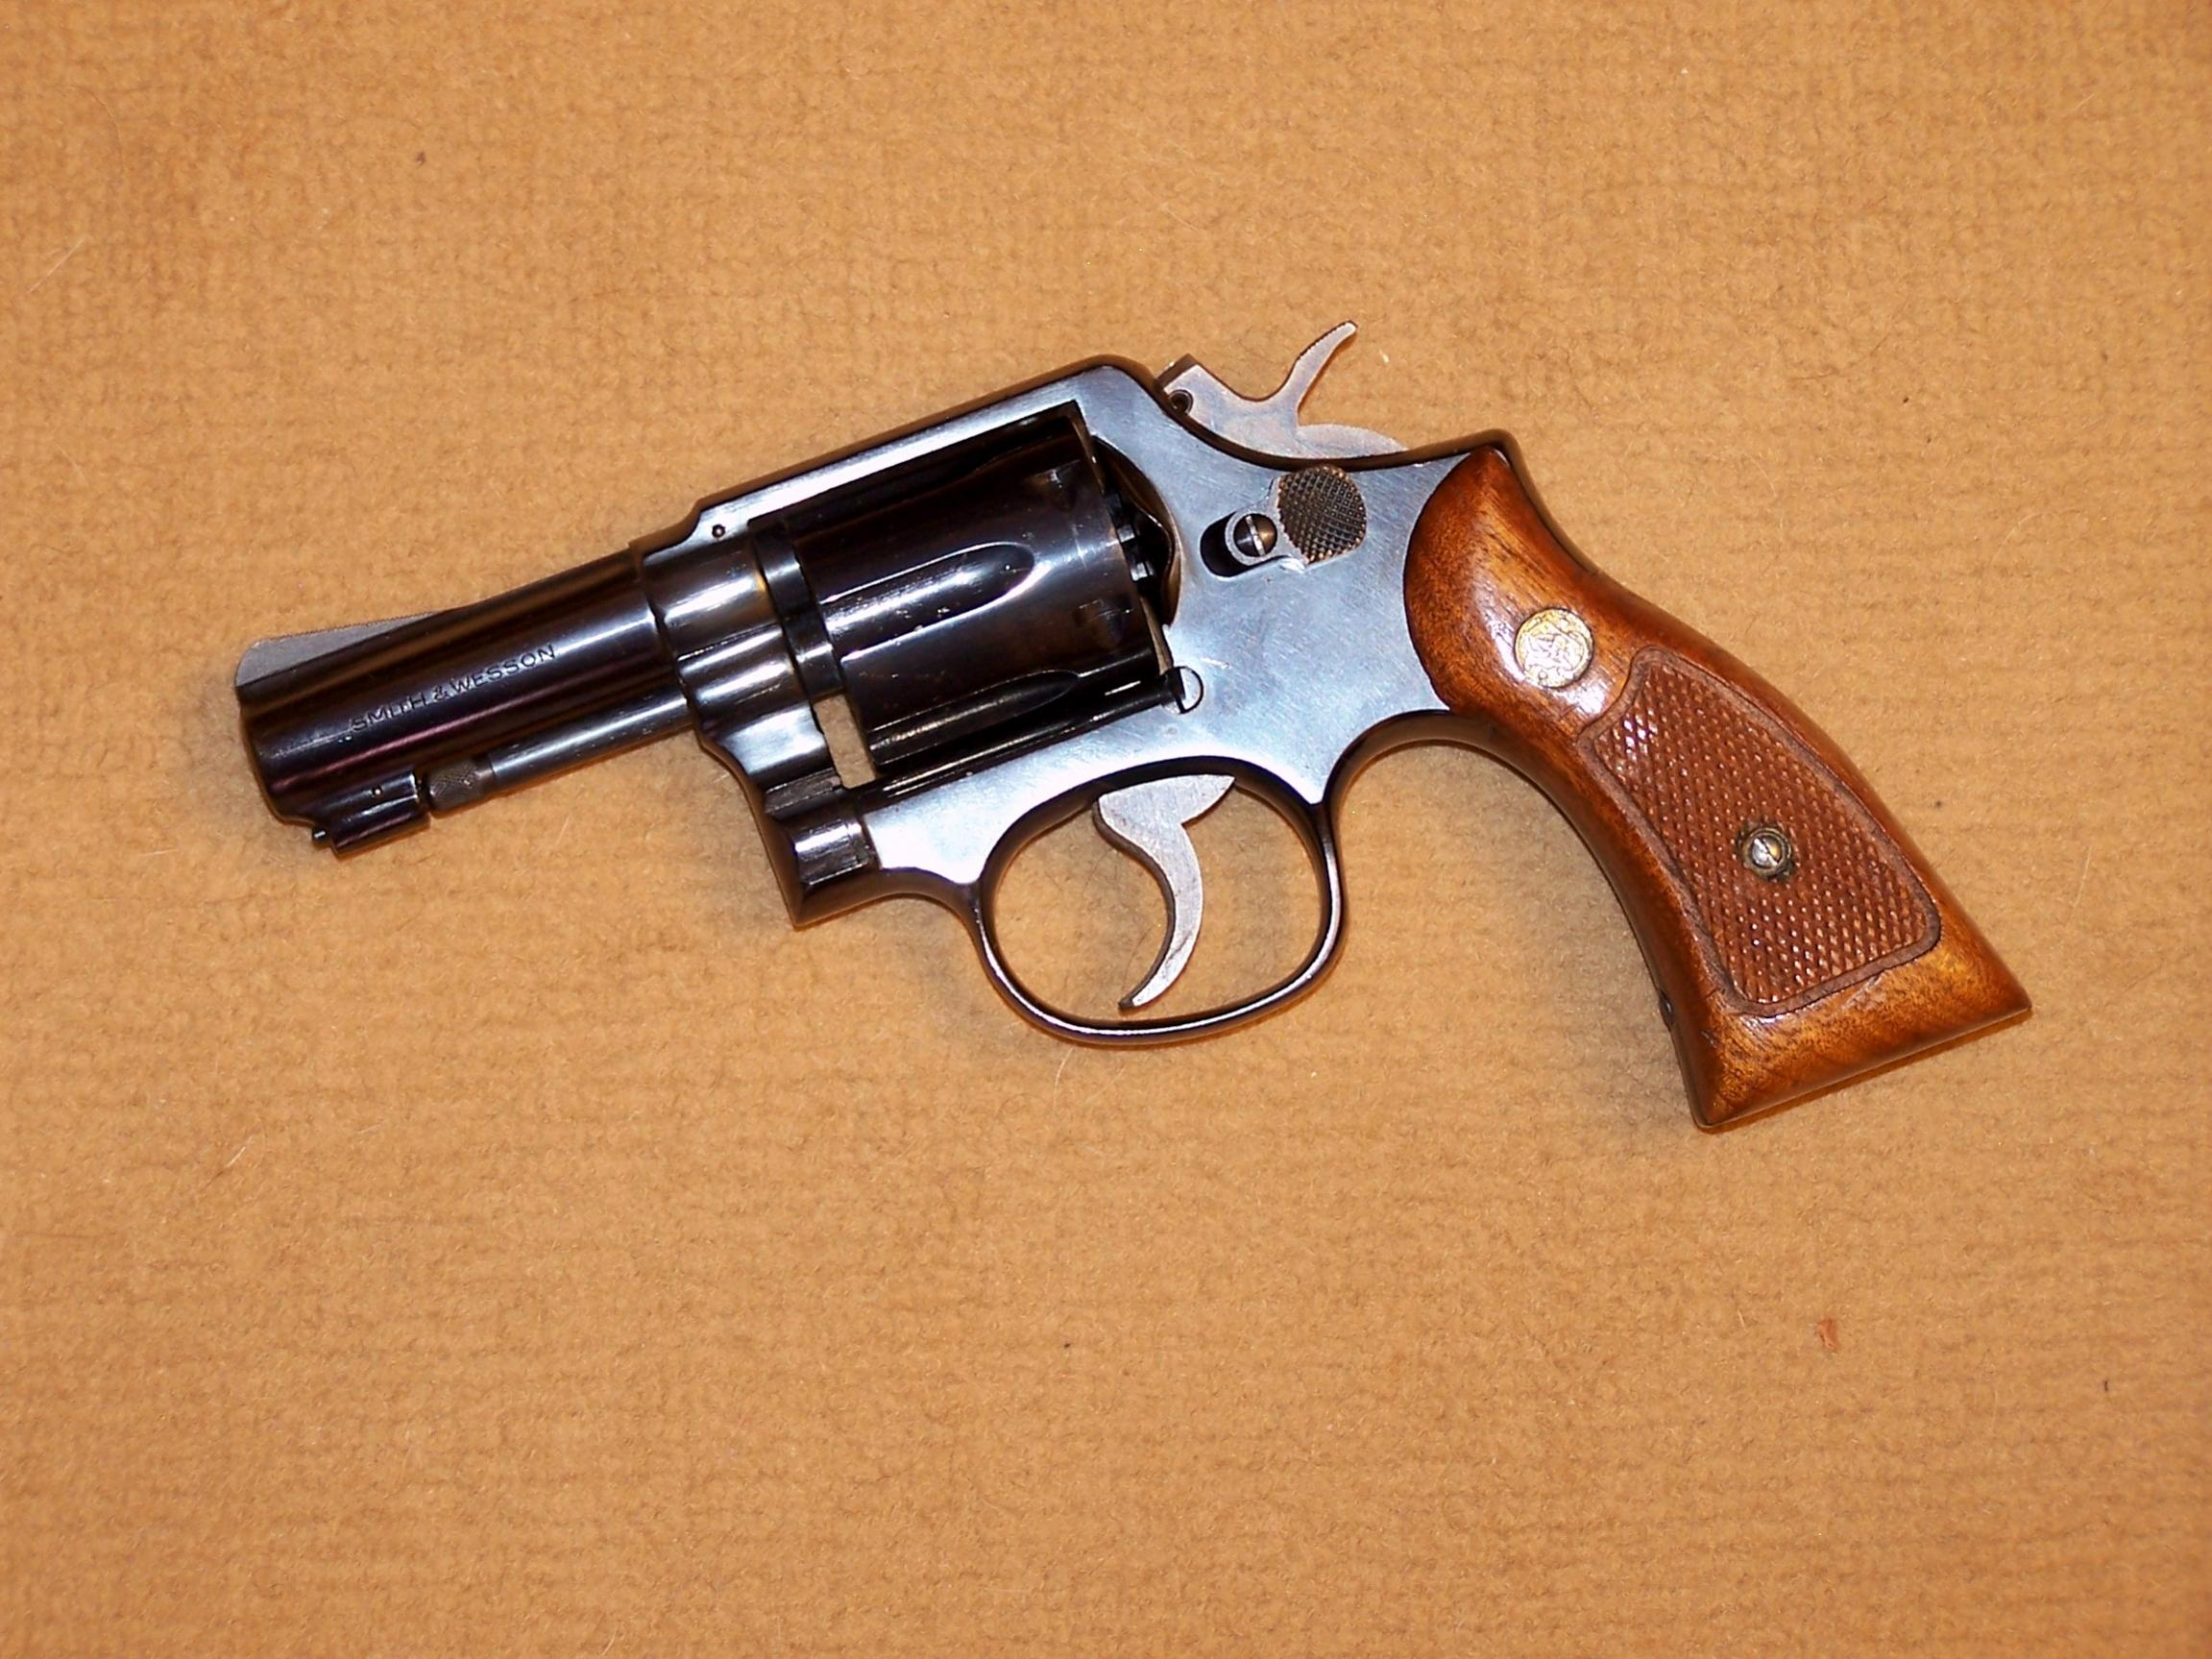 Getting re-acquainted with my S&W M10-004.jpg